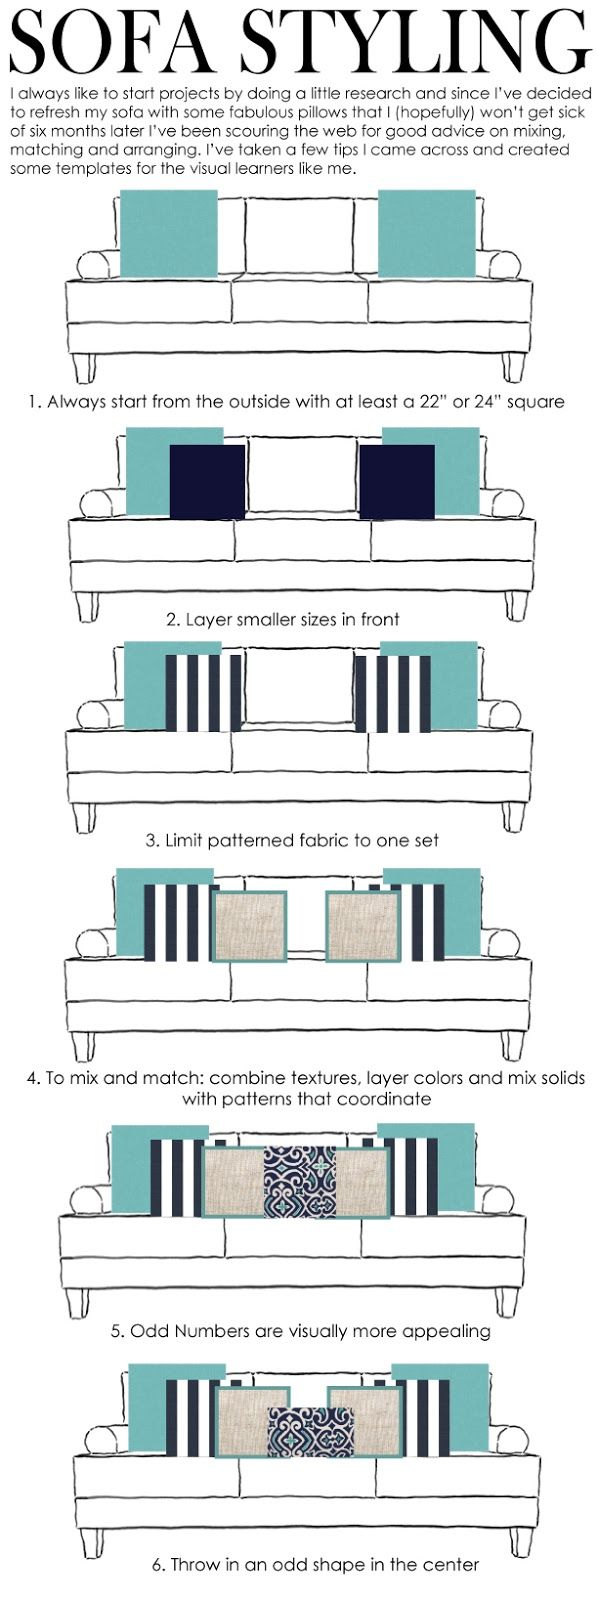 A good little helper when dressing your sofa with accent pillows, that bring not only color to your room, but texture and design as well! Home Decor Tips & Ideas!